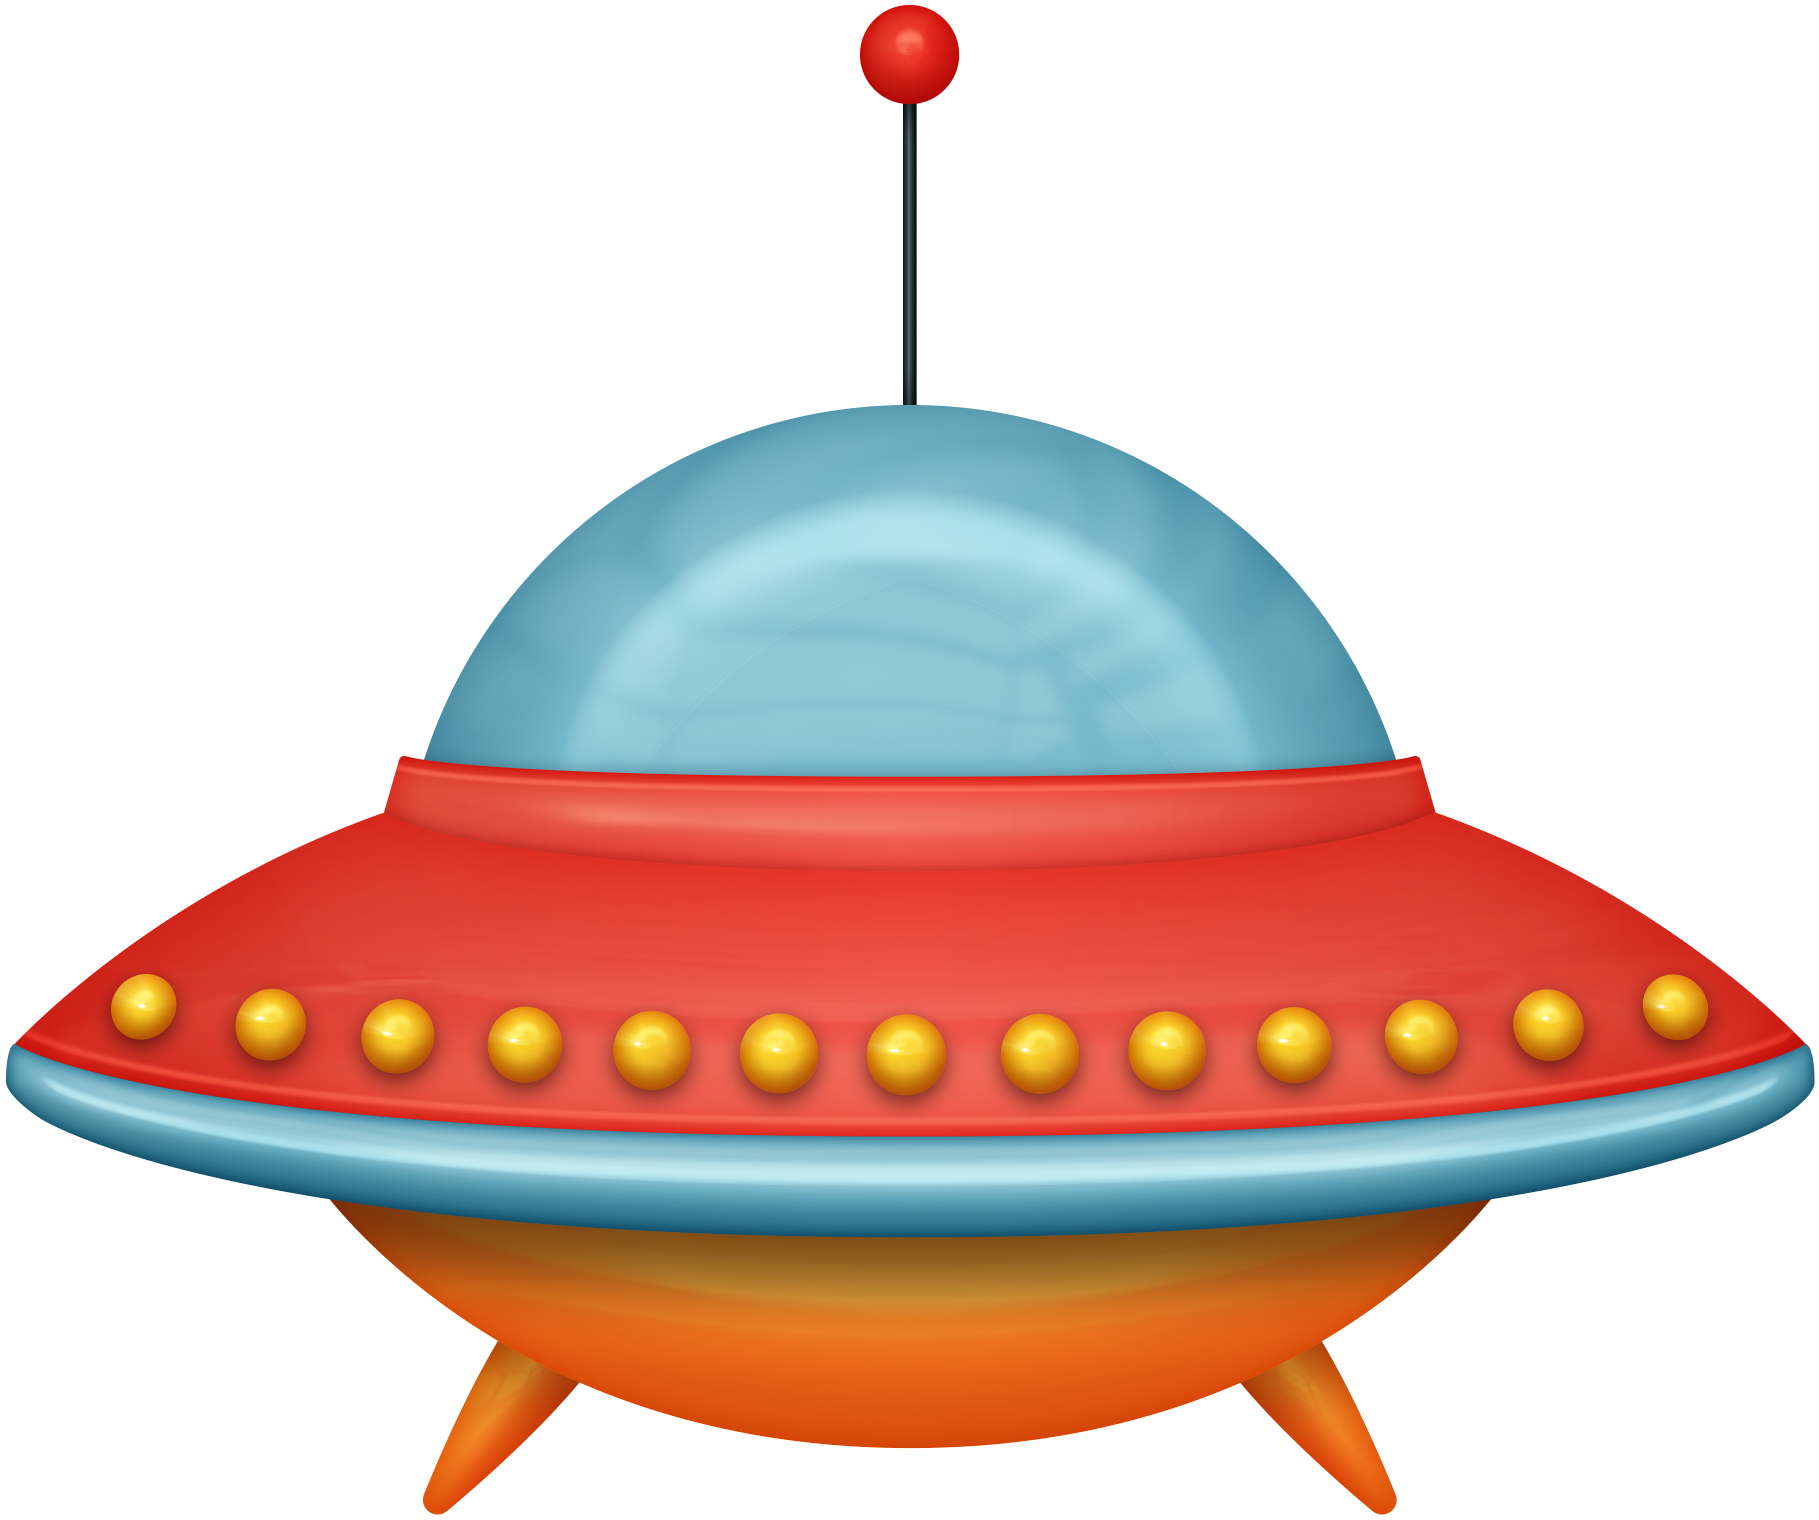 Unidentified flying object spacecraft. Spaceship clipart red